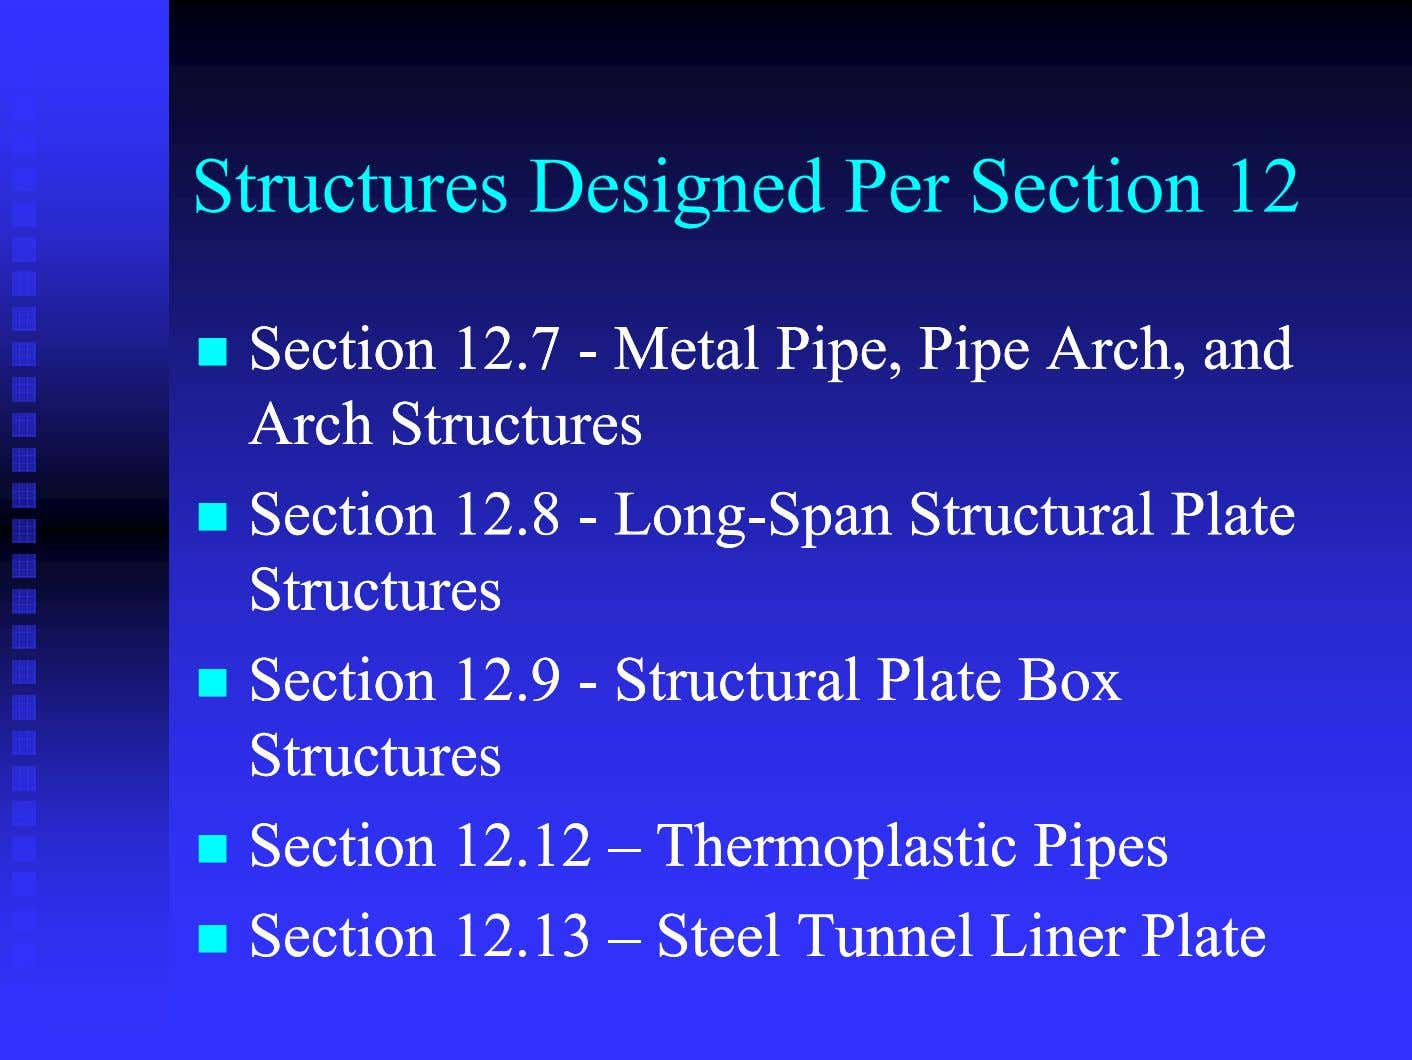 Structures Designed Per Section 12  SectionSection 12.712.7 -- MetalMetal Pipe,Pipe, PipePipe Arch,Arch, andand